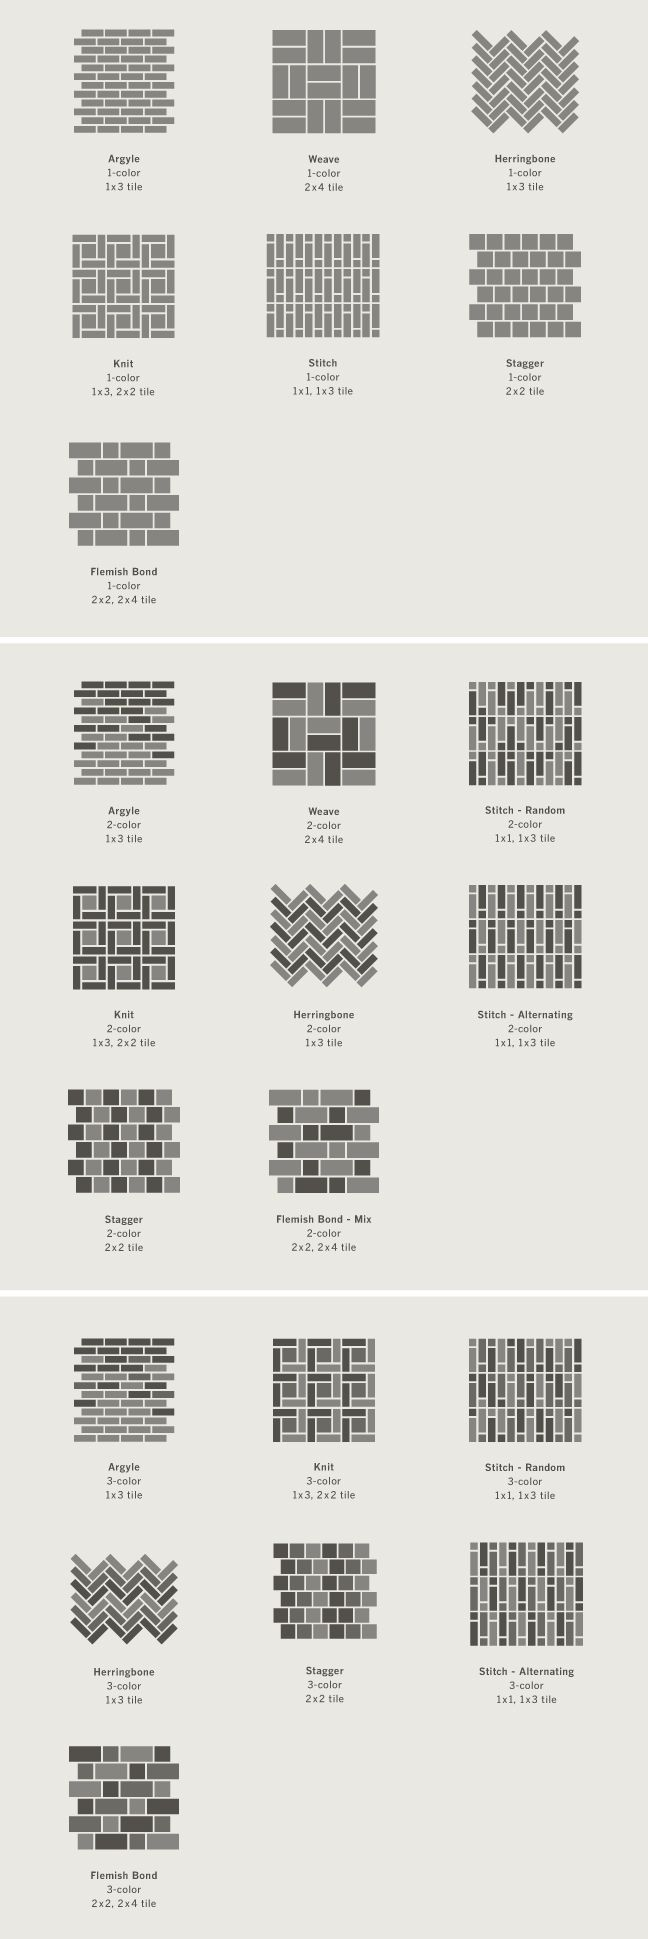 Great ideas for backsplash or bathroom floor design. Tapestry Collection - Heath Ceramics layout concepts